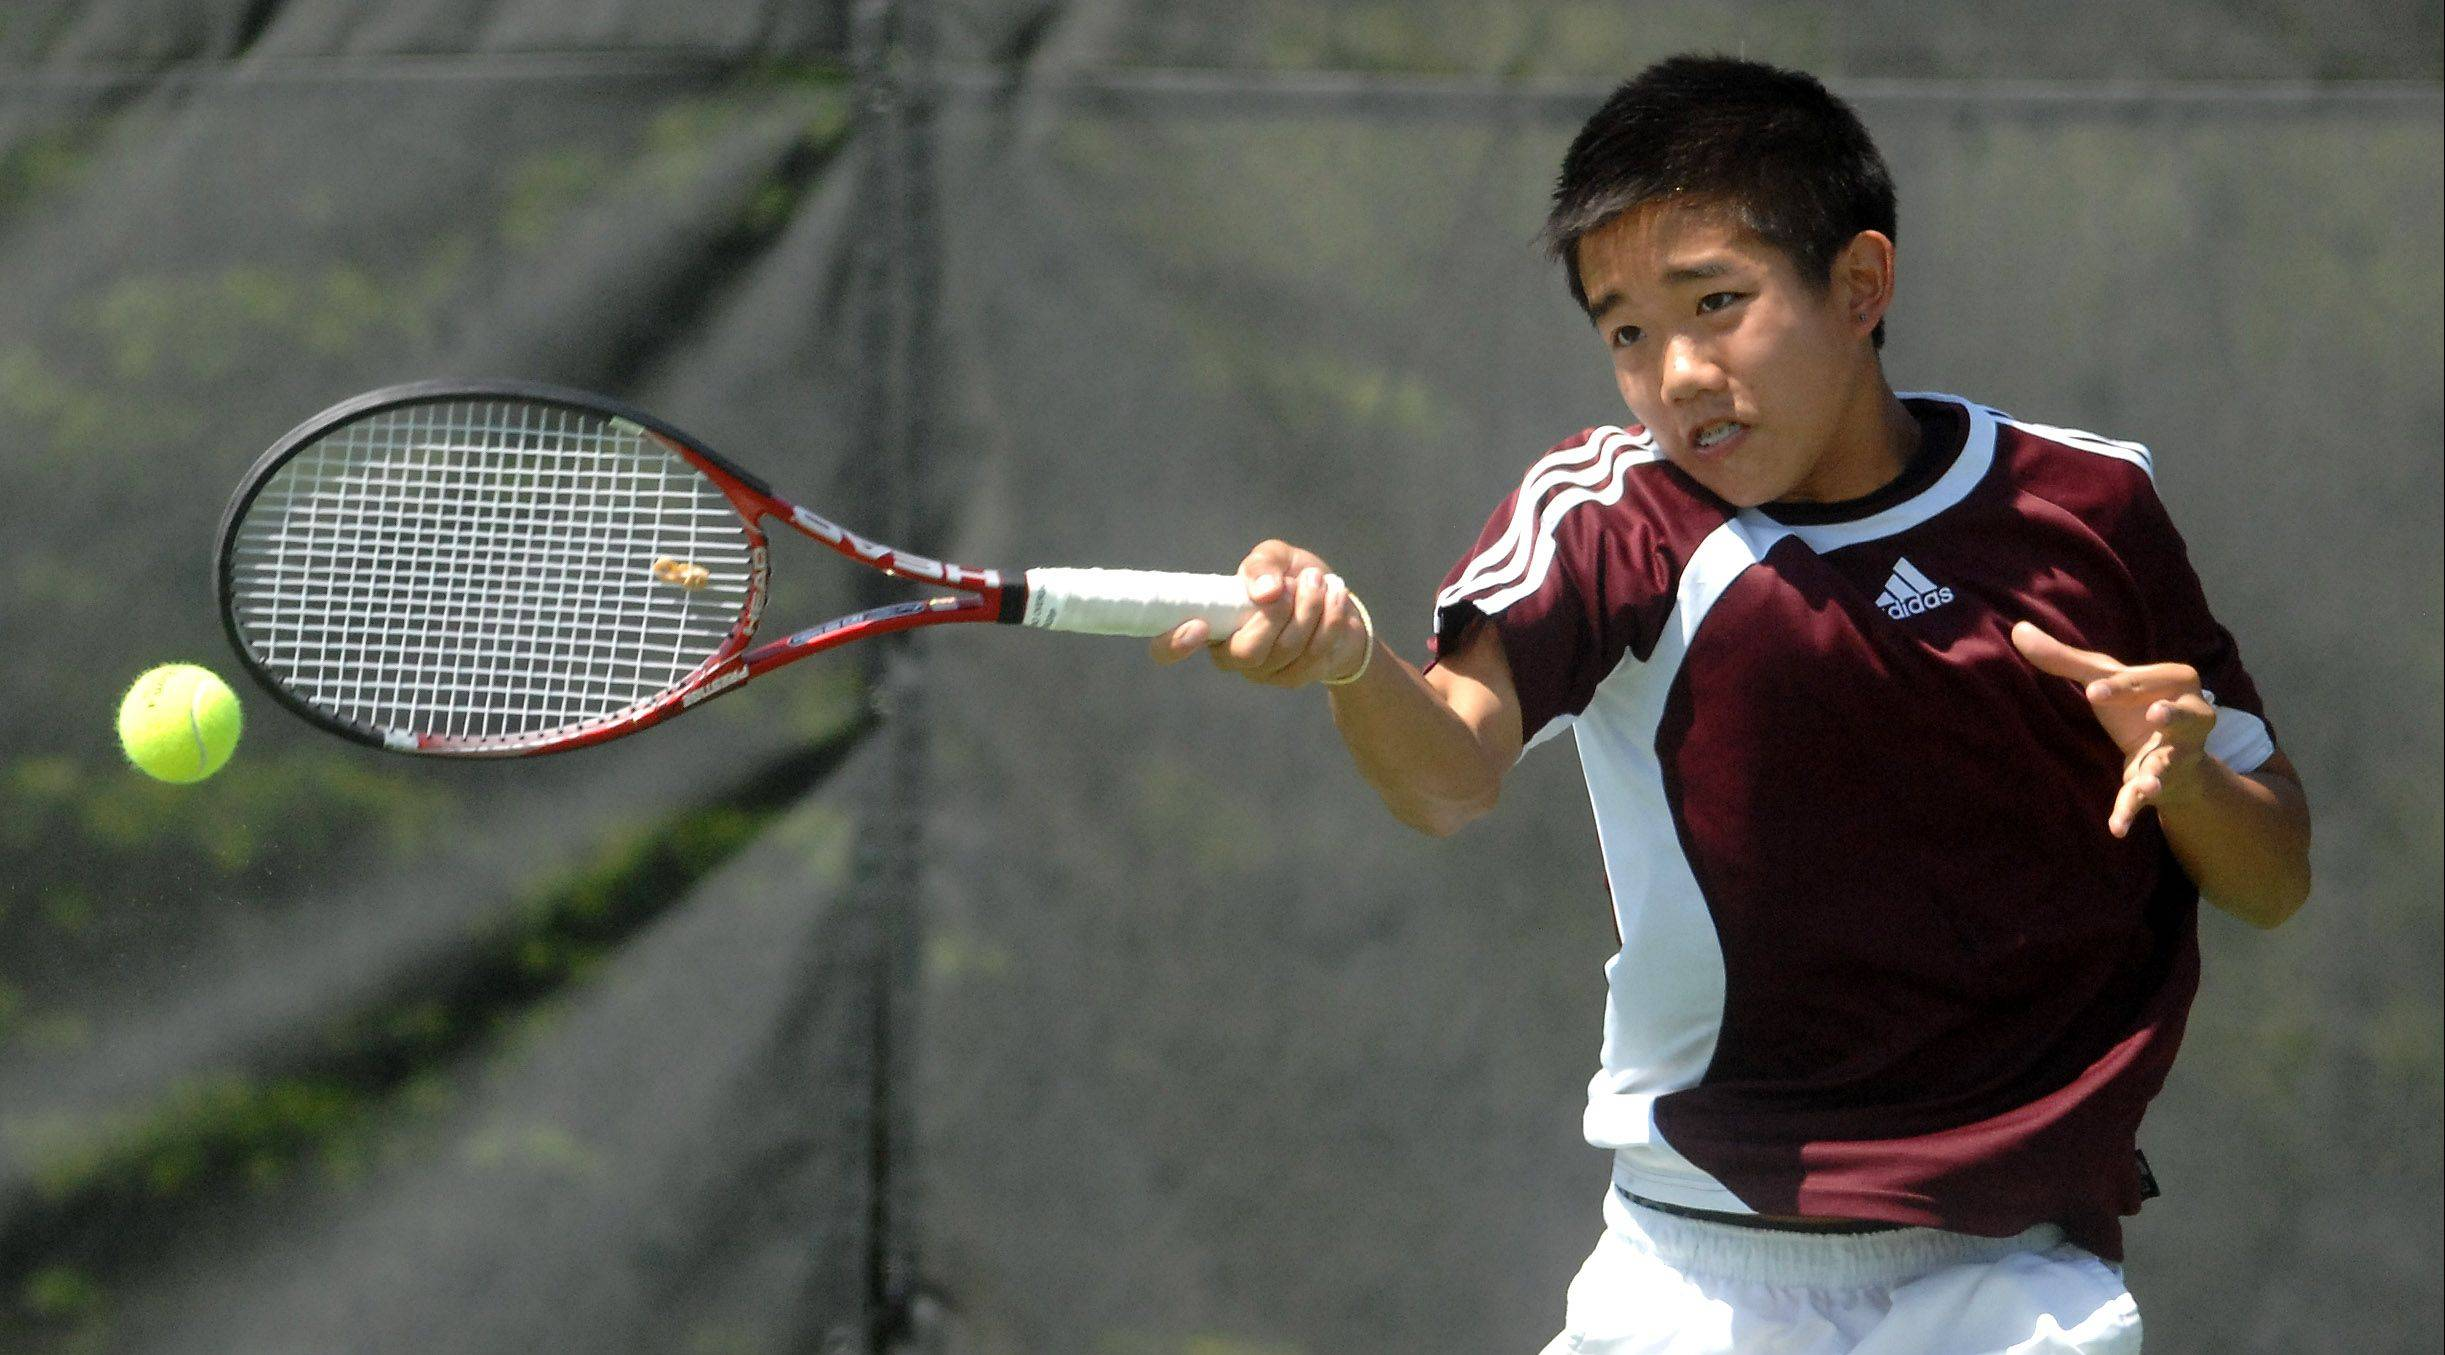 Elgin�s Eric Chai returns serve against St. Charles North during the Upstate Eight River Division tournament last season. Chai is a returning state qualifier.